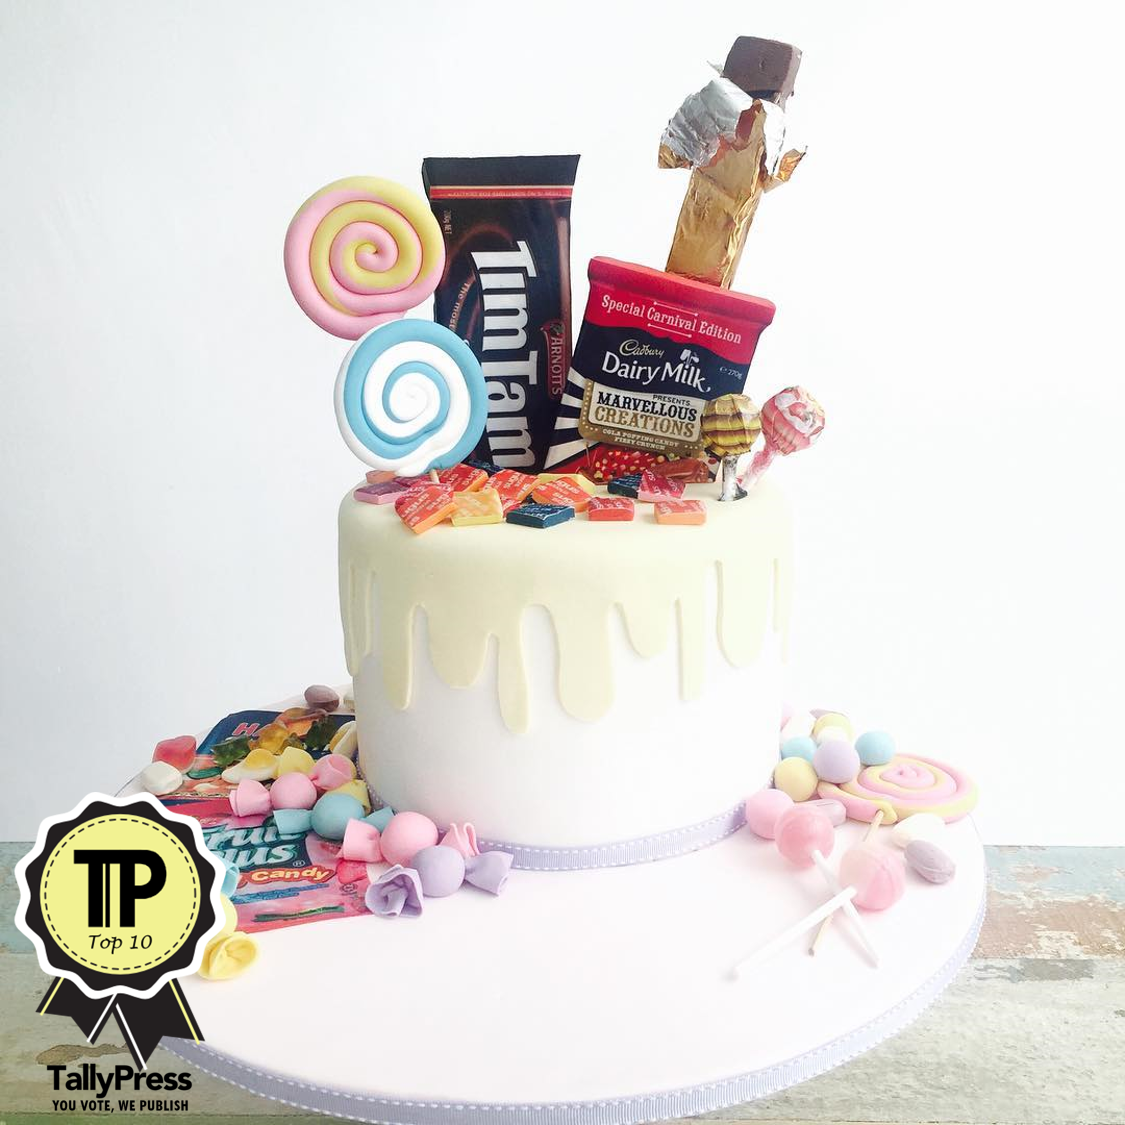 malaysia's top 10 cake specialists | tallypress